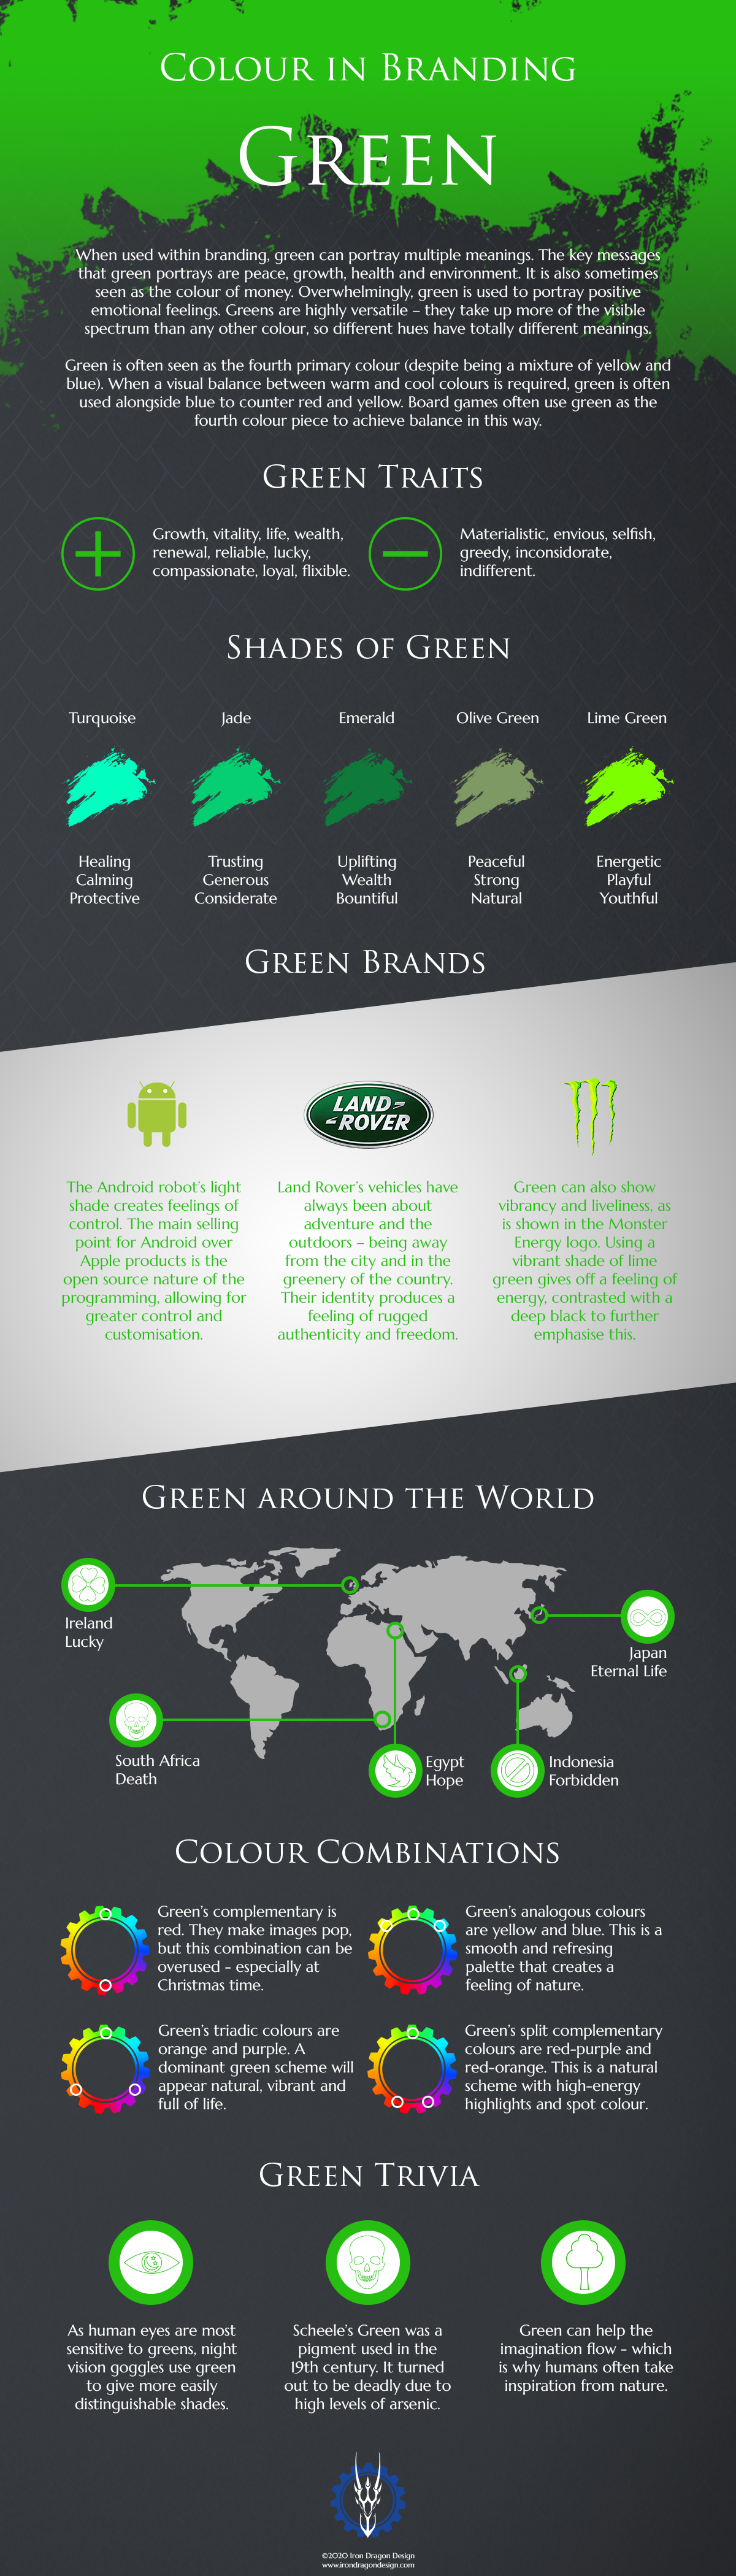 Colour in Branding Green Infographic